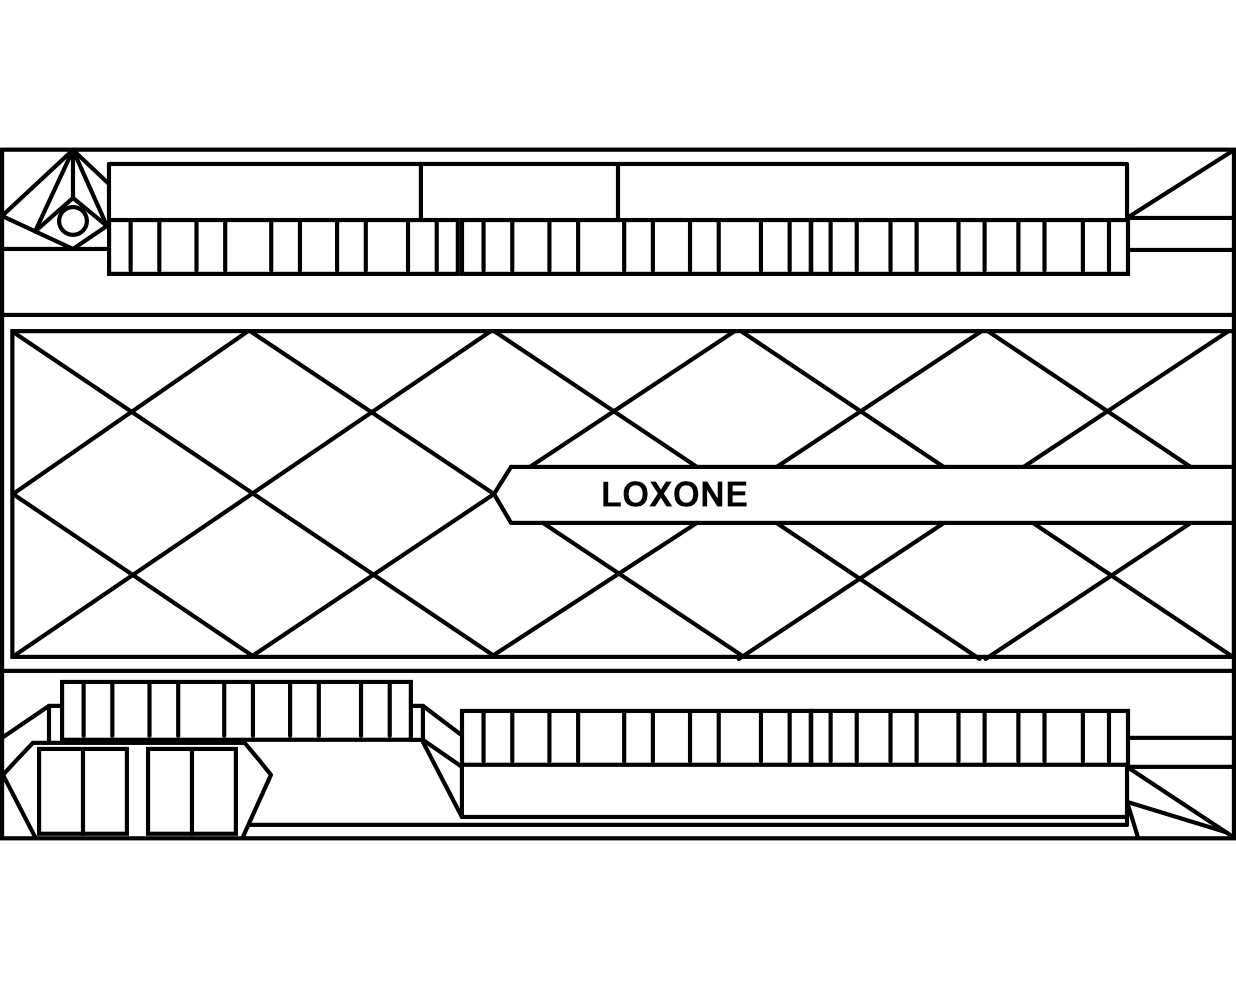 Extension LOXONE, 100002